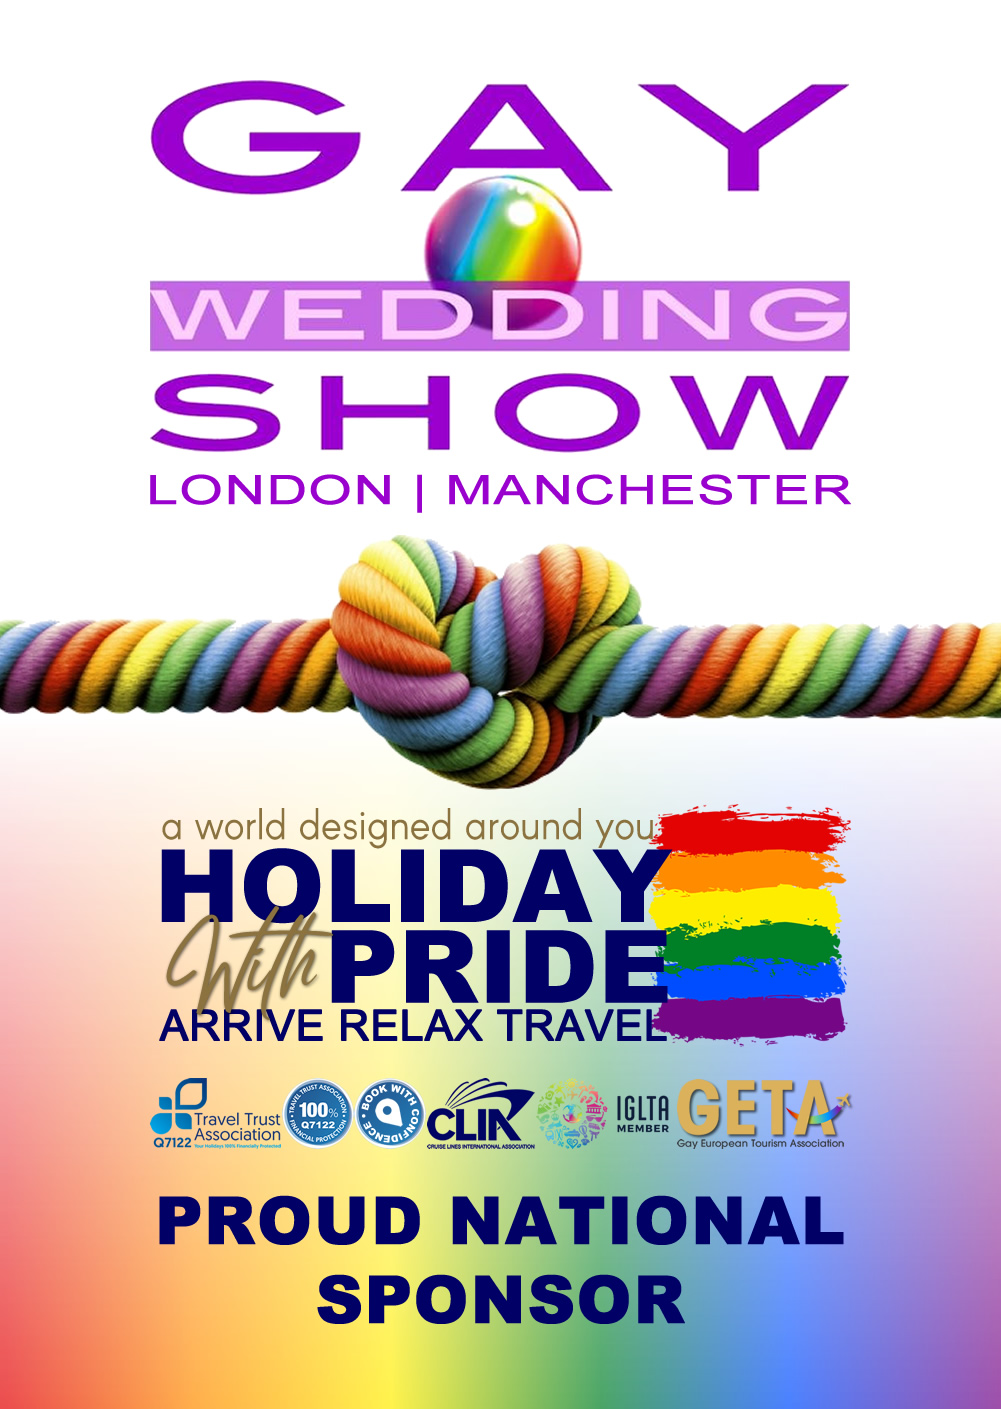 Holiday with Pride is a proud national sponsor of the Gay Wedding Show in London and Manchester